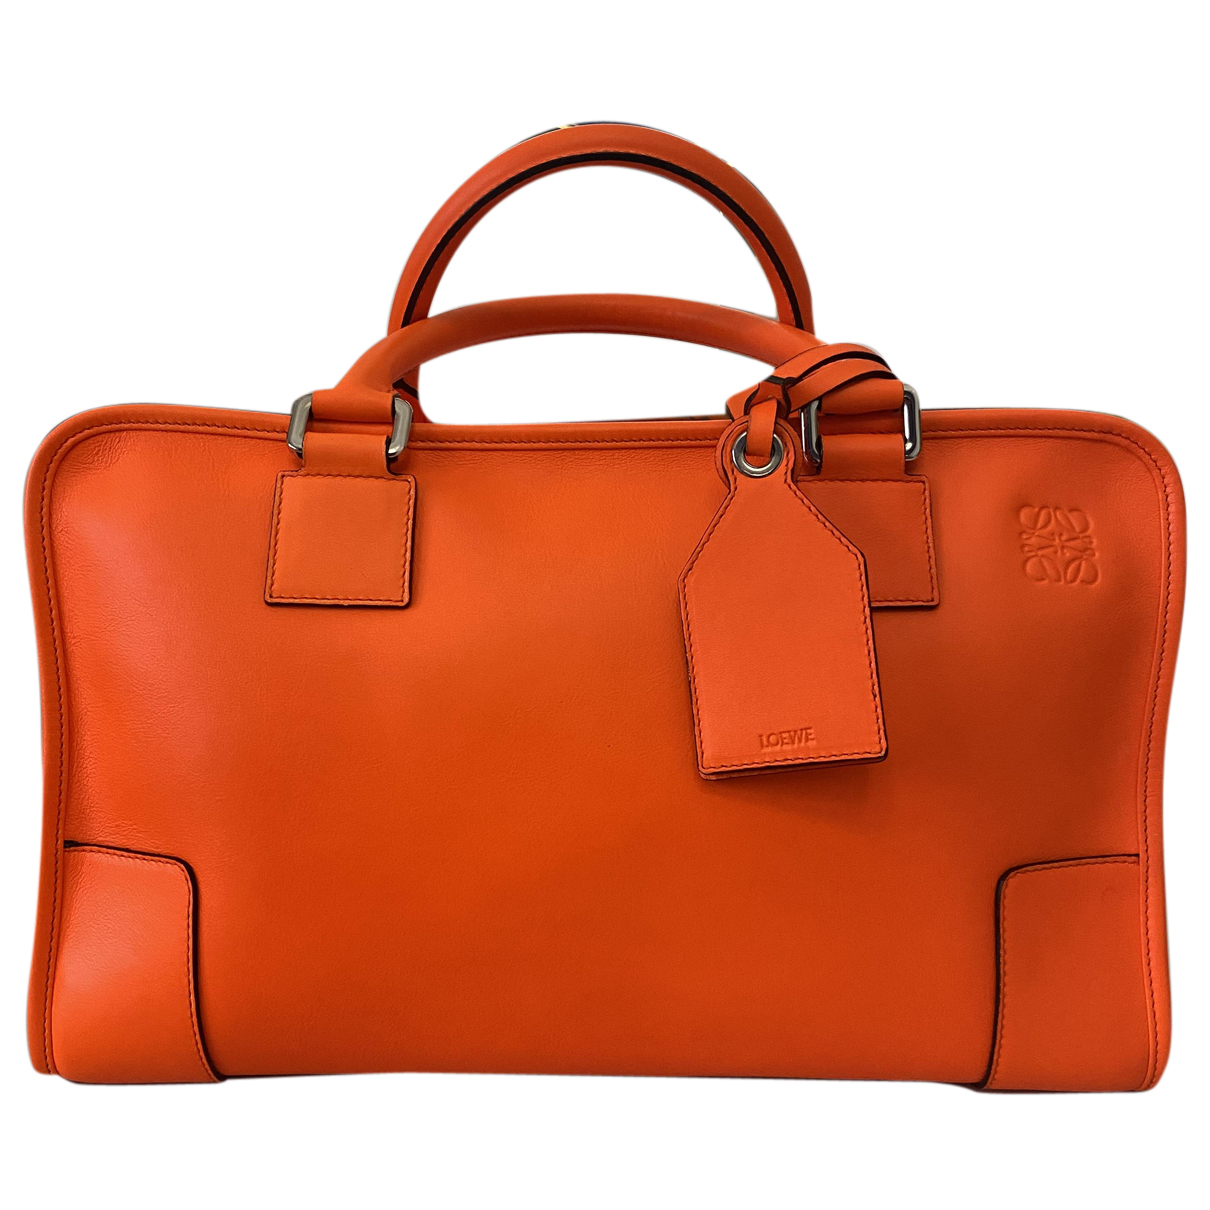 Loewe Amazona Orange Leather handbag for Women N